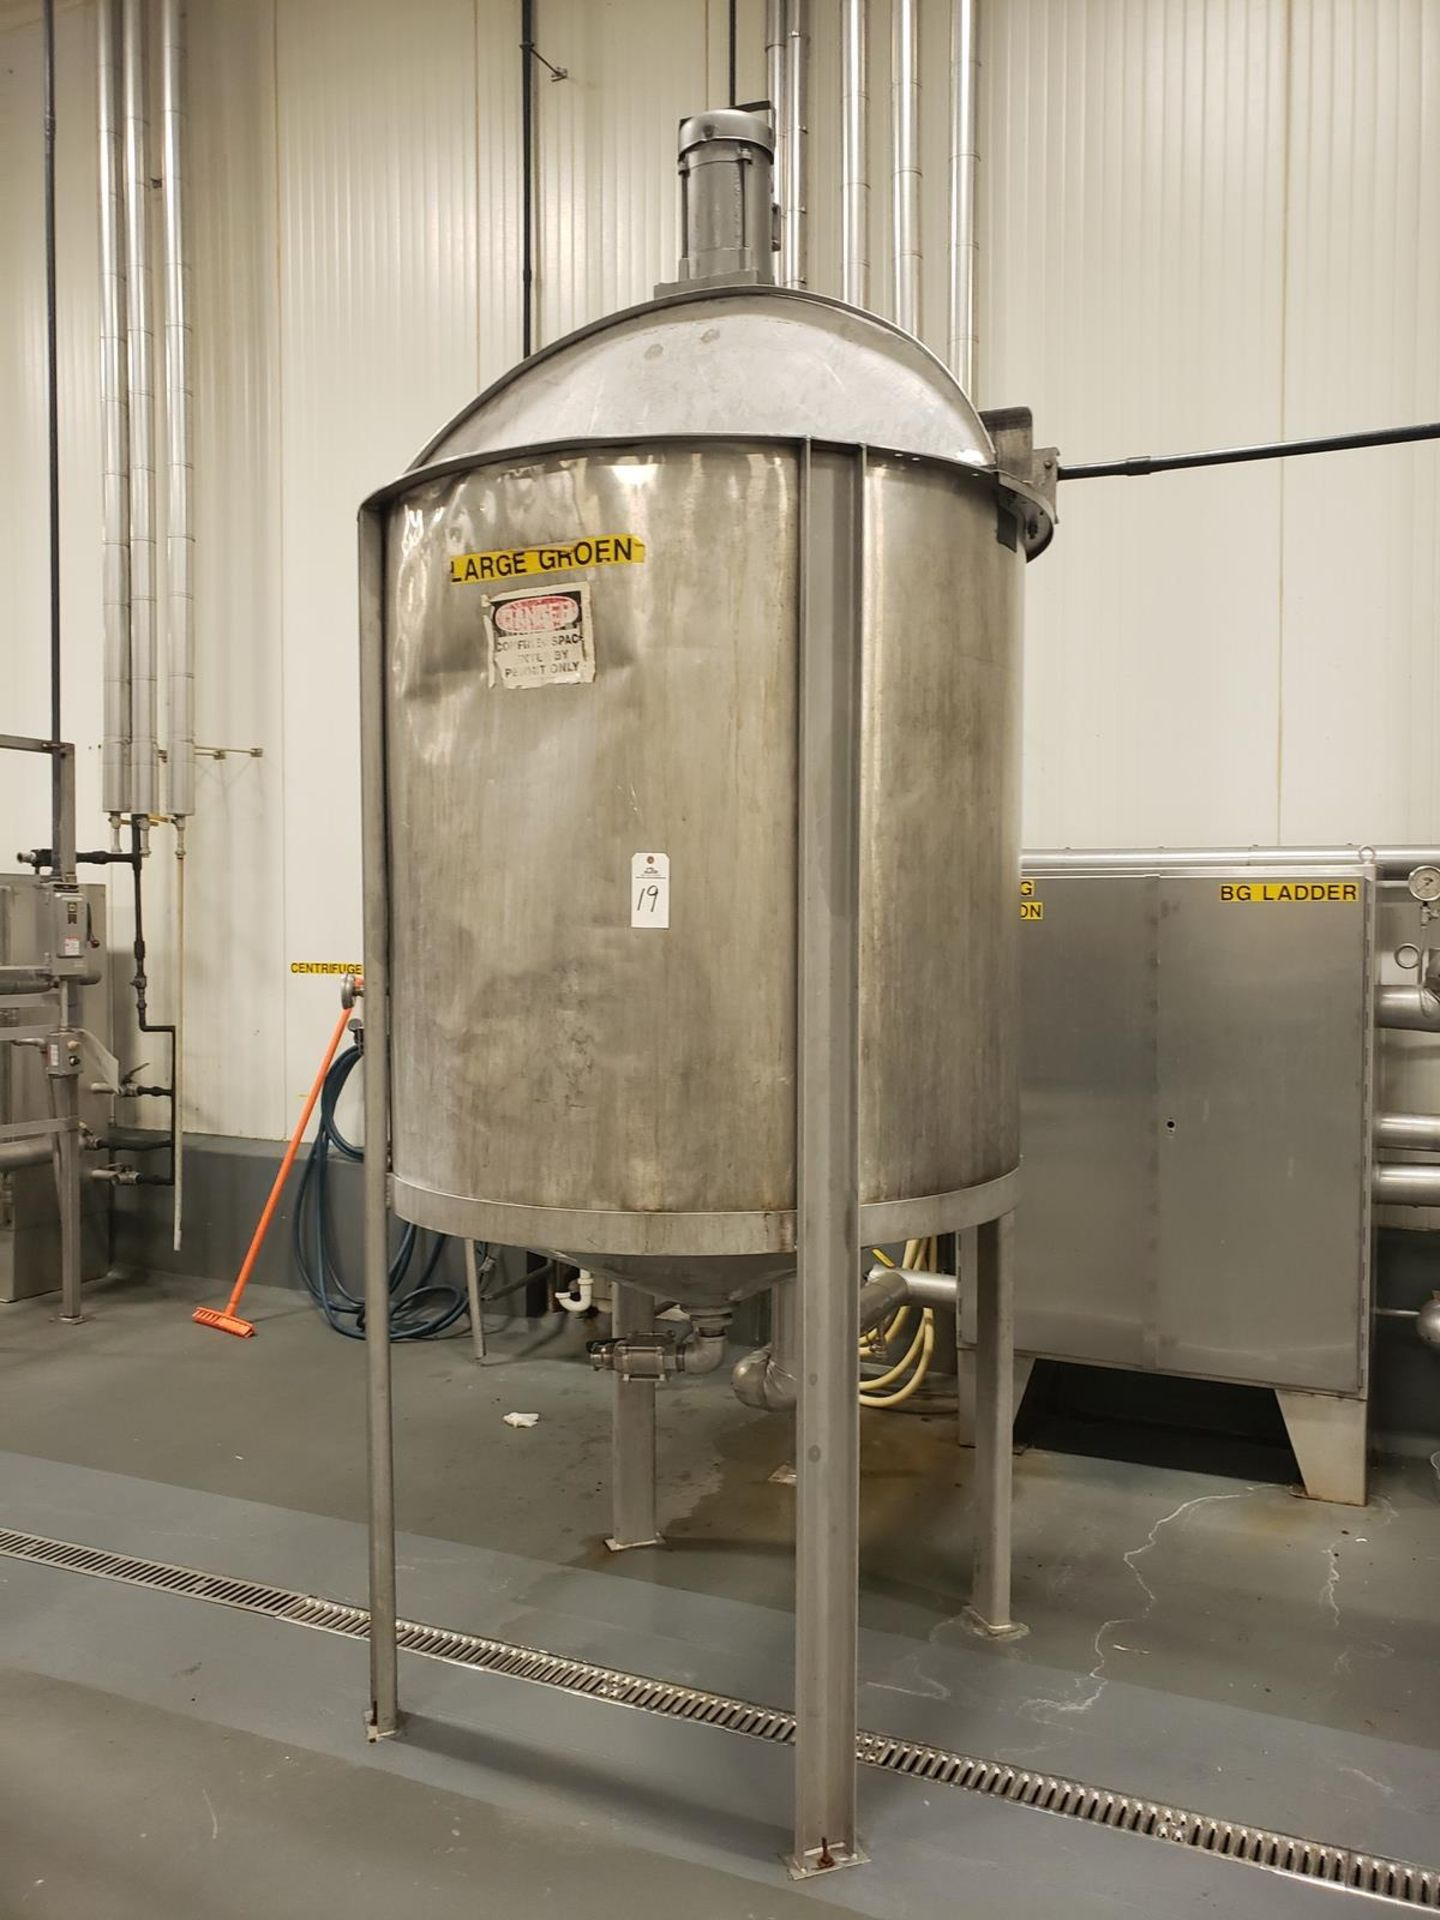 "Lot 19 - Tank - 600 Gallon Stainless Steel Mixing Tank, 55"" X 56"" Deep, Cone Botto - Loc: NJ 